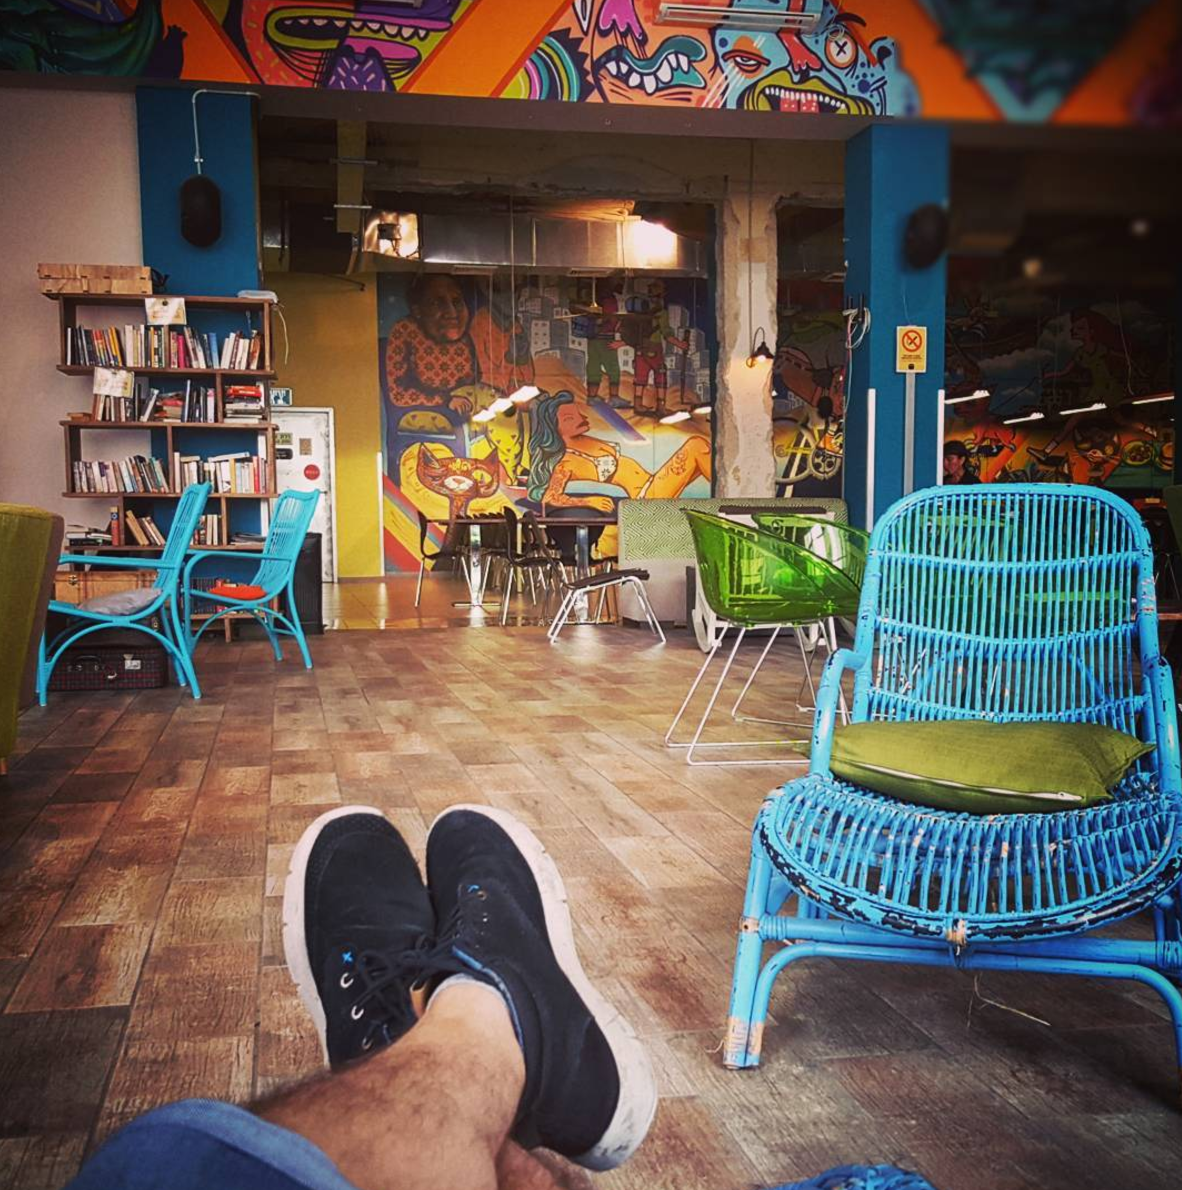 Sleep in Tel Aviv - If you're looking for the perfect accommodation in Tel Aviv, that has to be the Abraham Hostel.The vibe of Abraham Hostel is definitely one of the best you will find in Israel, and I'd dare to say in the world. Offering both dorms and private beds, all including en-suite bathrooms and an incredible breakfast, my experience in Israel wouldn't have been the same if I hadn't stayed at the Abraham Hostel.They also offer daily tours and activities in the bar and rooftop, which is just perfect for the solo traveller as well as bigger groups. In this hostel I found a bit of everything: from young backpackers in their 20s to more experienced travellers, Abraham Hostel in Tel Aviv had something for everyone.I chose this chain of hostels for my entire stay in Israel and also took multiple tours with them, and it was the best choice that I could've made.